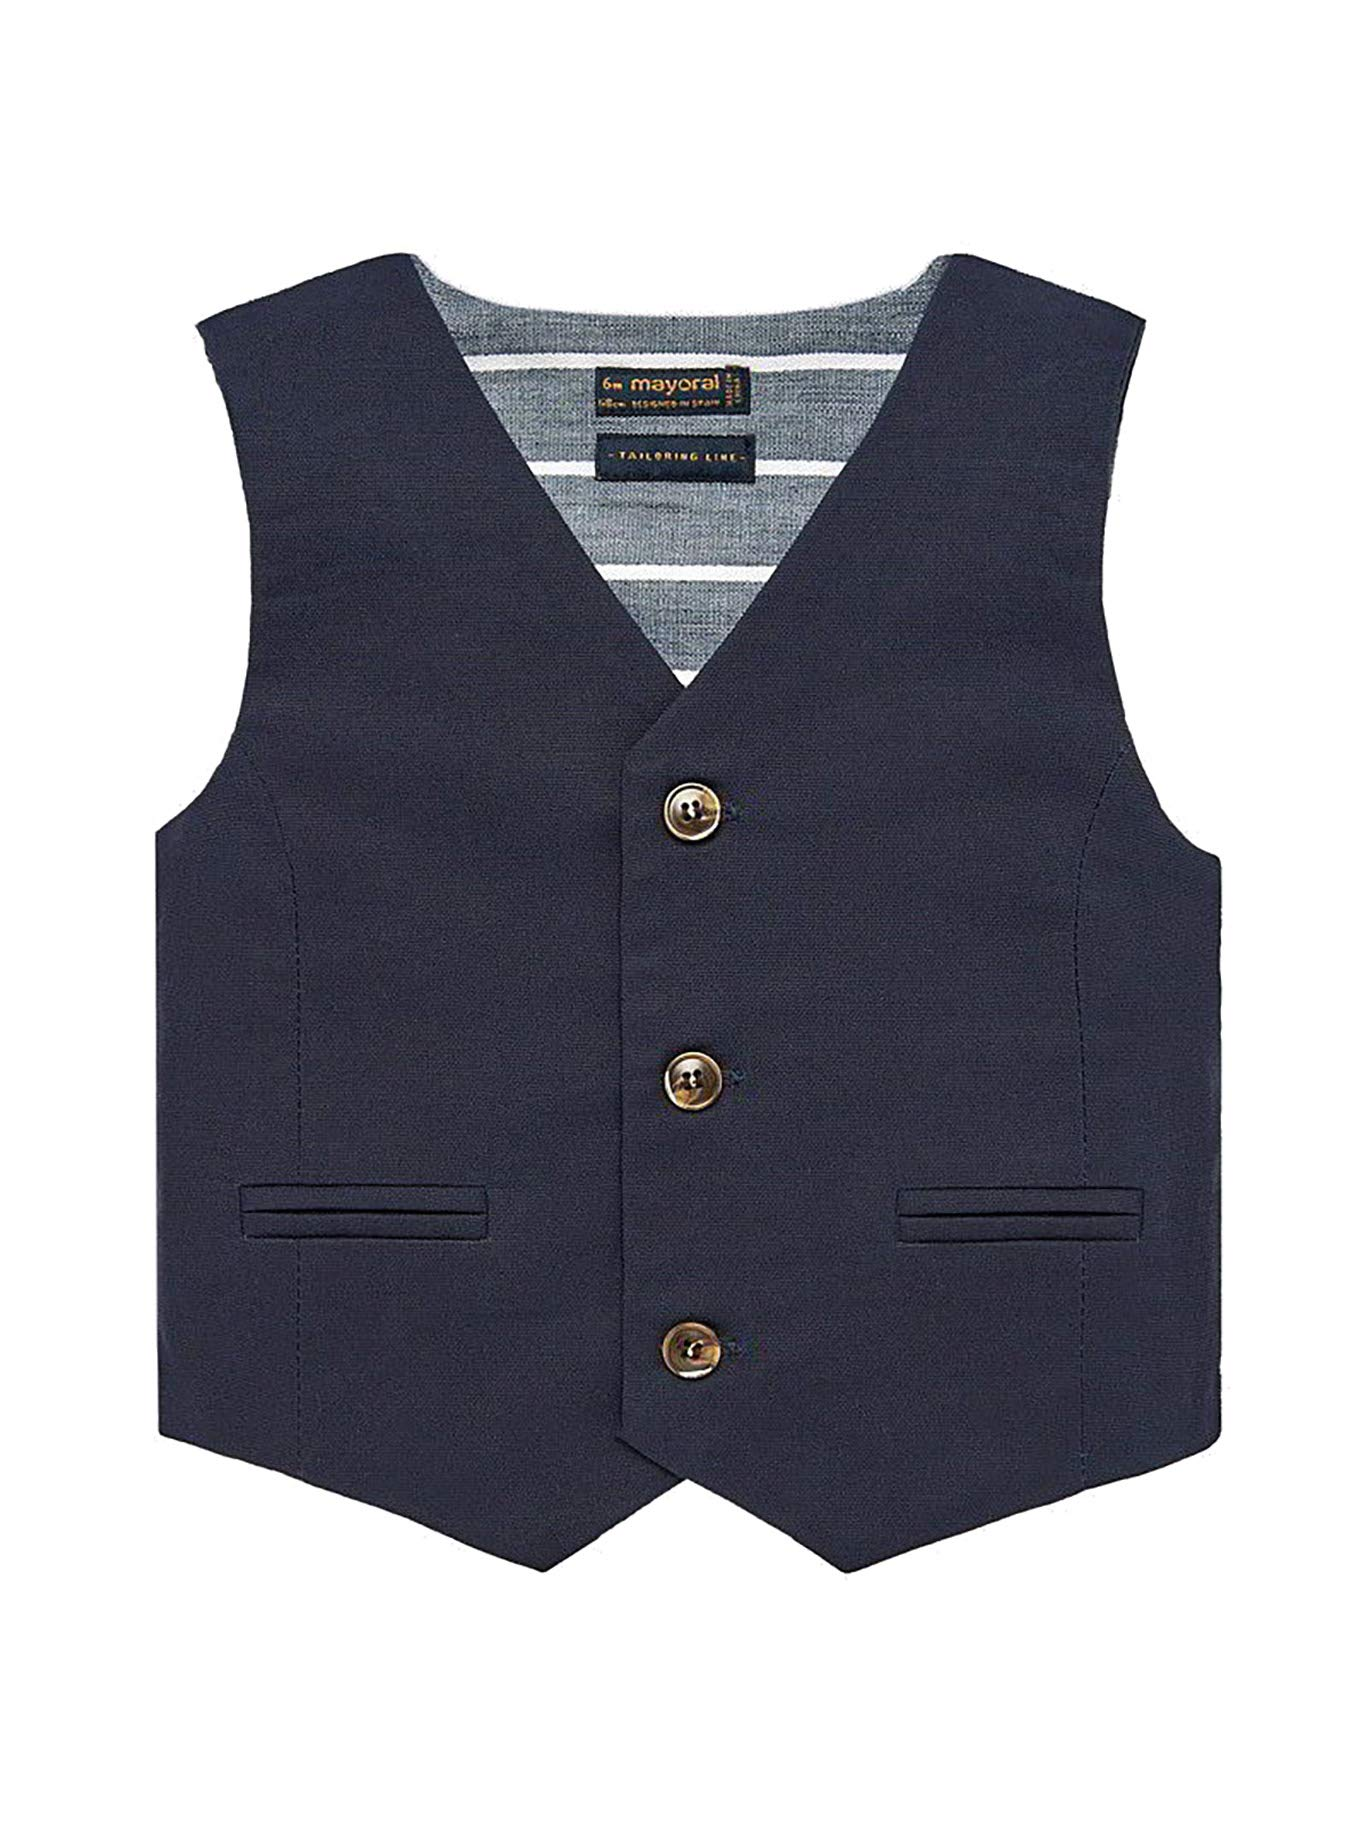 Mayoral 29-01313-077 - Dressy Linen Vest for Baby-Boys 18 Months Navy by Mayoral